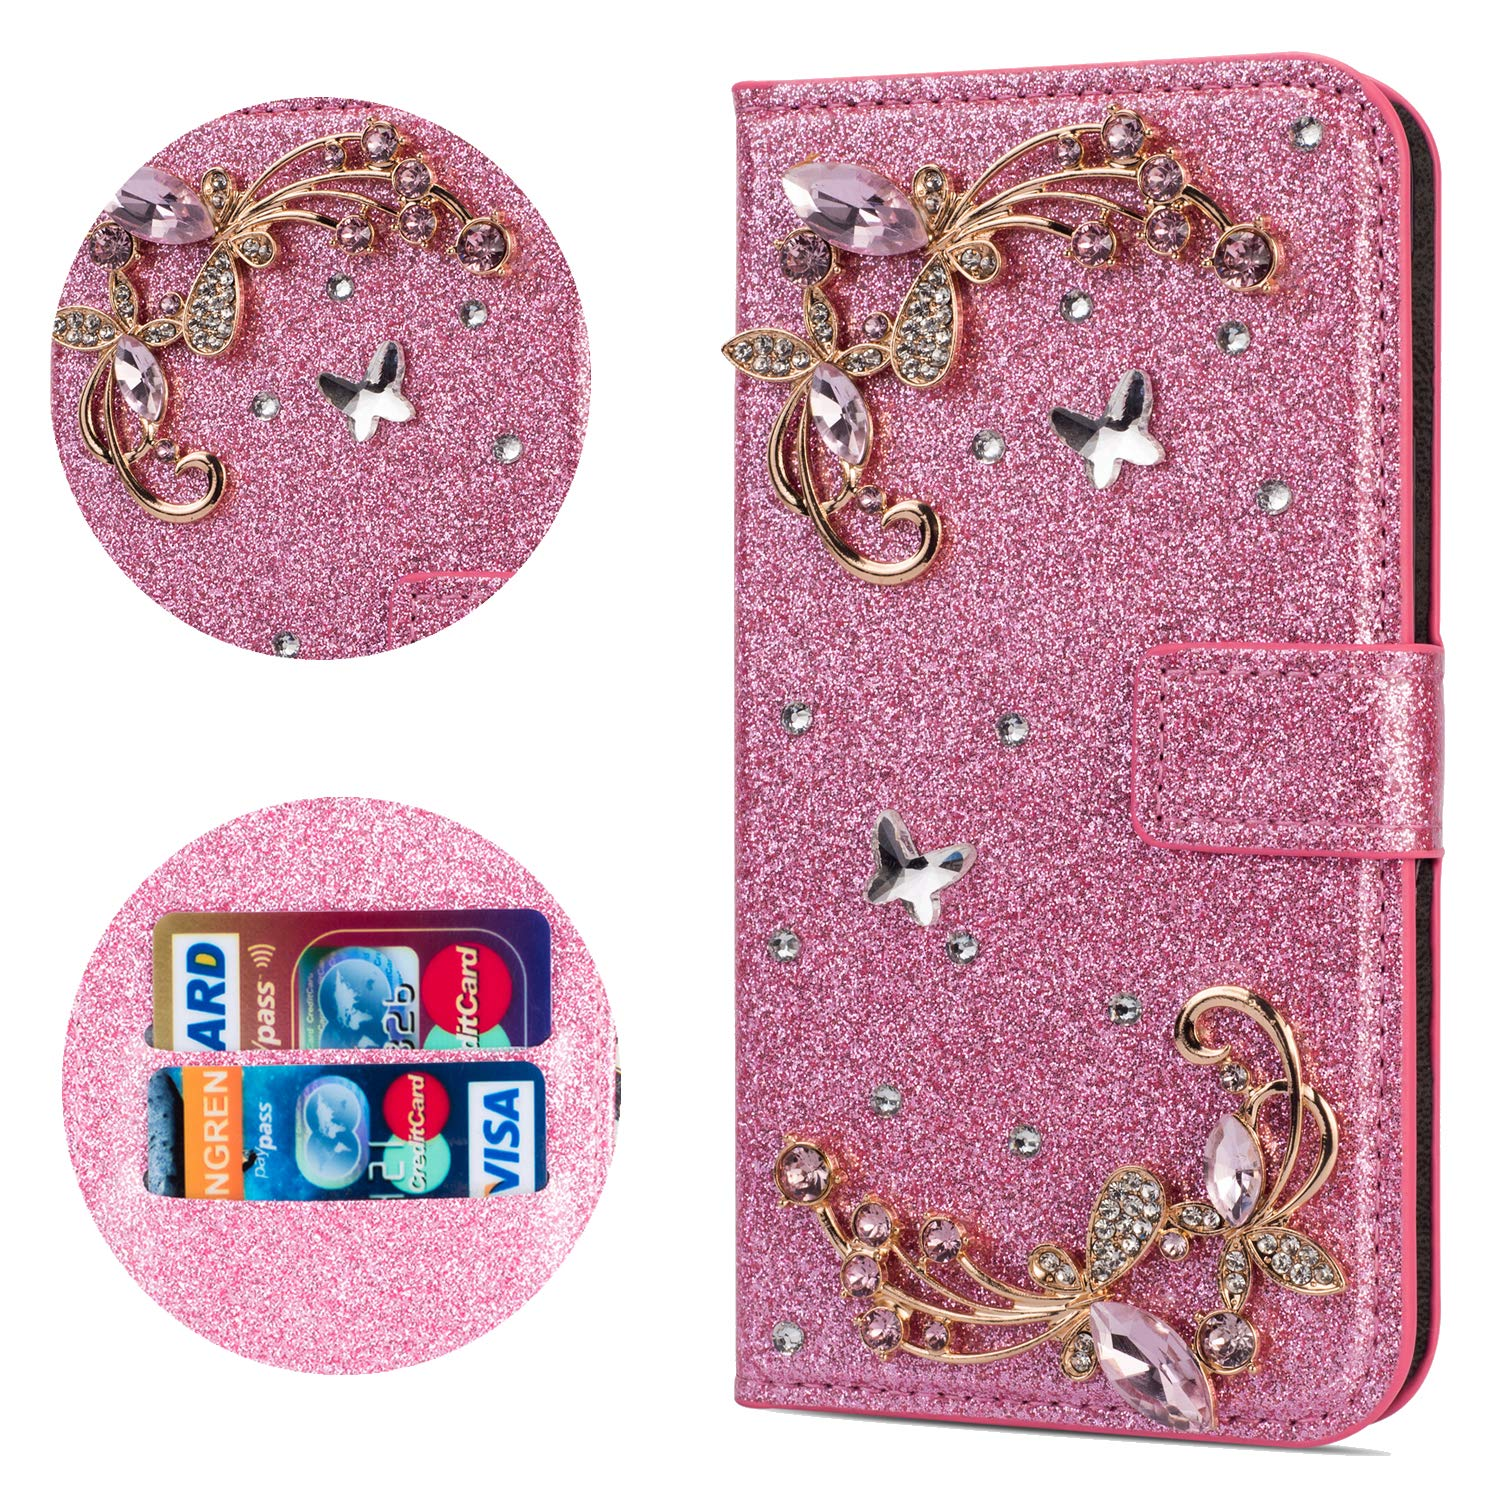 Stysen Flip Case for iPhone 6S 4.7'',Leather Cover with 3D Handmade Crystal Diamonds Butterfly Glitter Floral Wallet Magnetic Clasp for iPhone 6S/6 4.7'' by Stysen